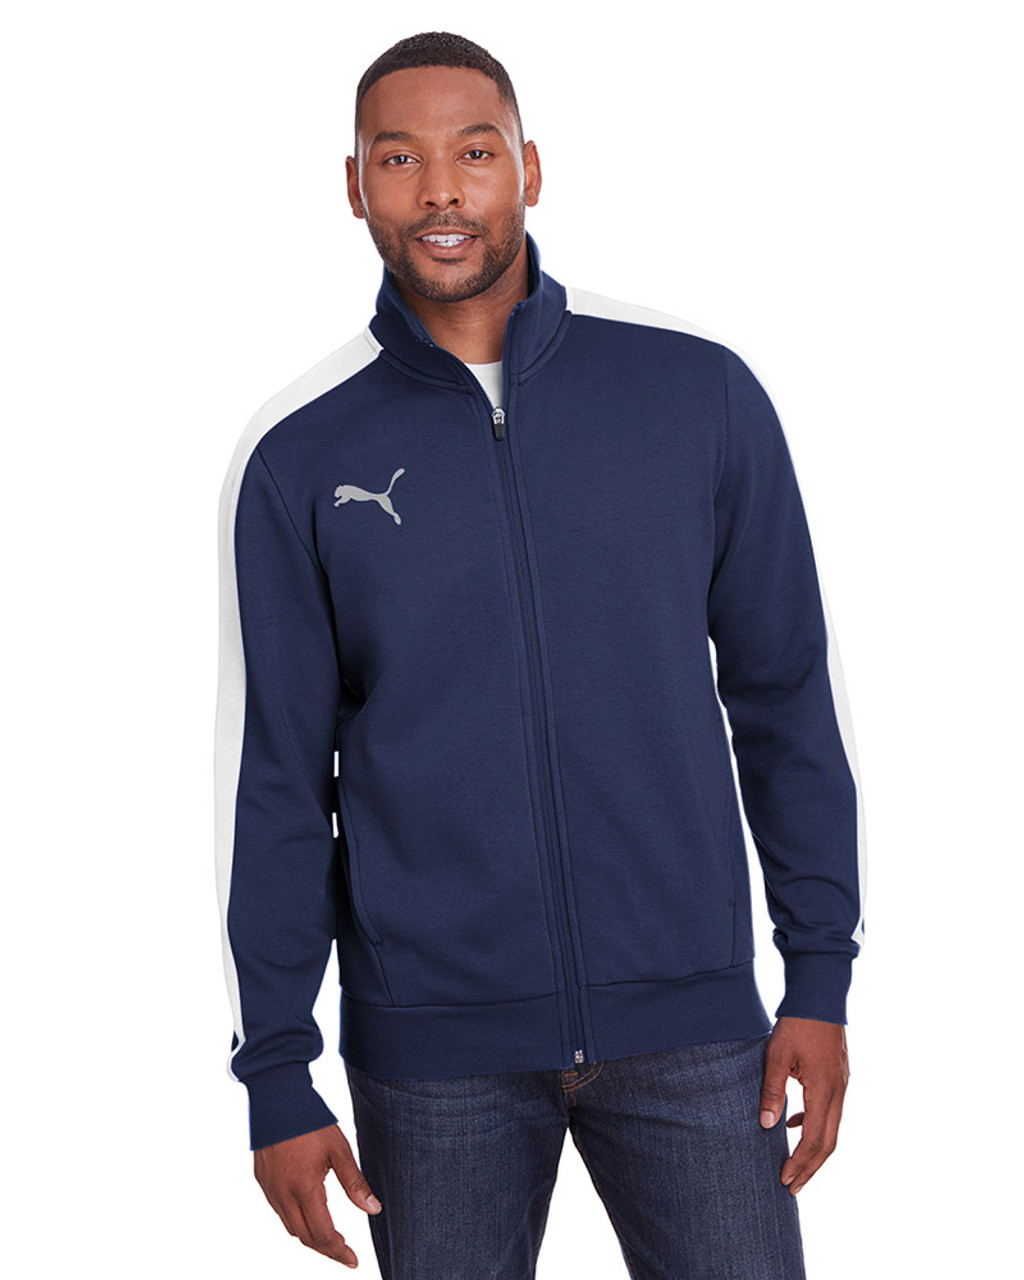 Peacoat/Quiet Shade - 597021 Puma Sport Adult P48 Fleece Track Jacket | Blankclothing.ca